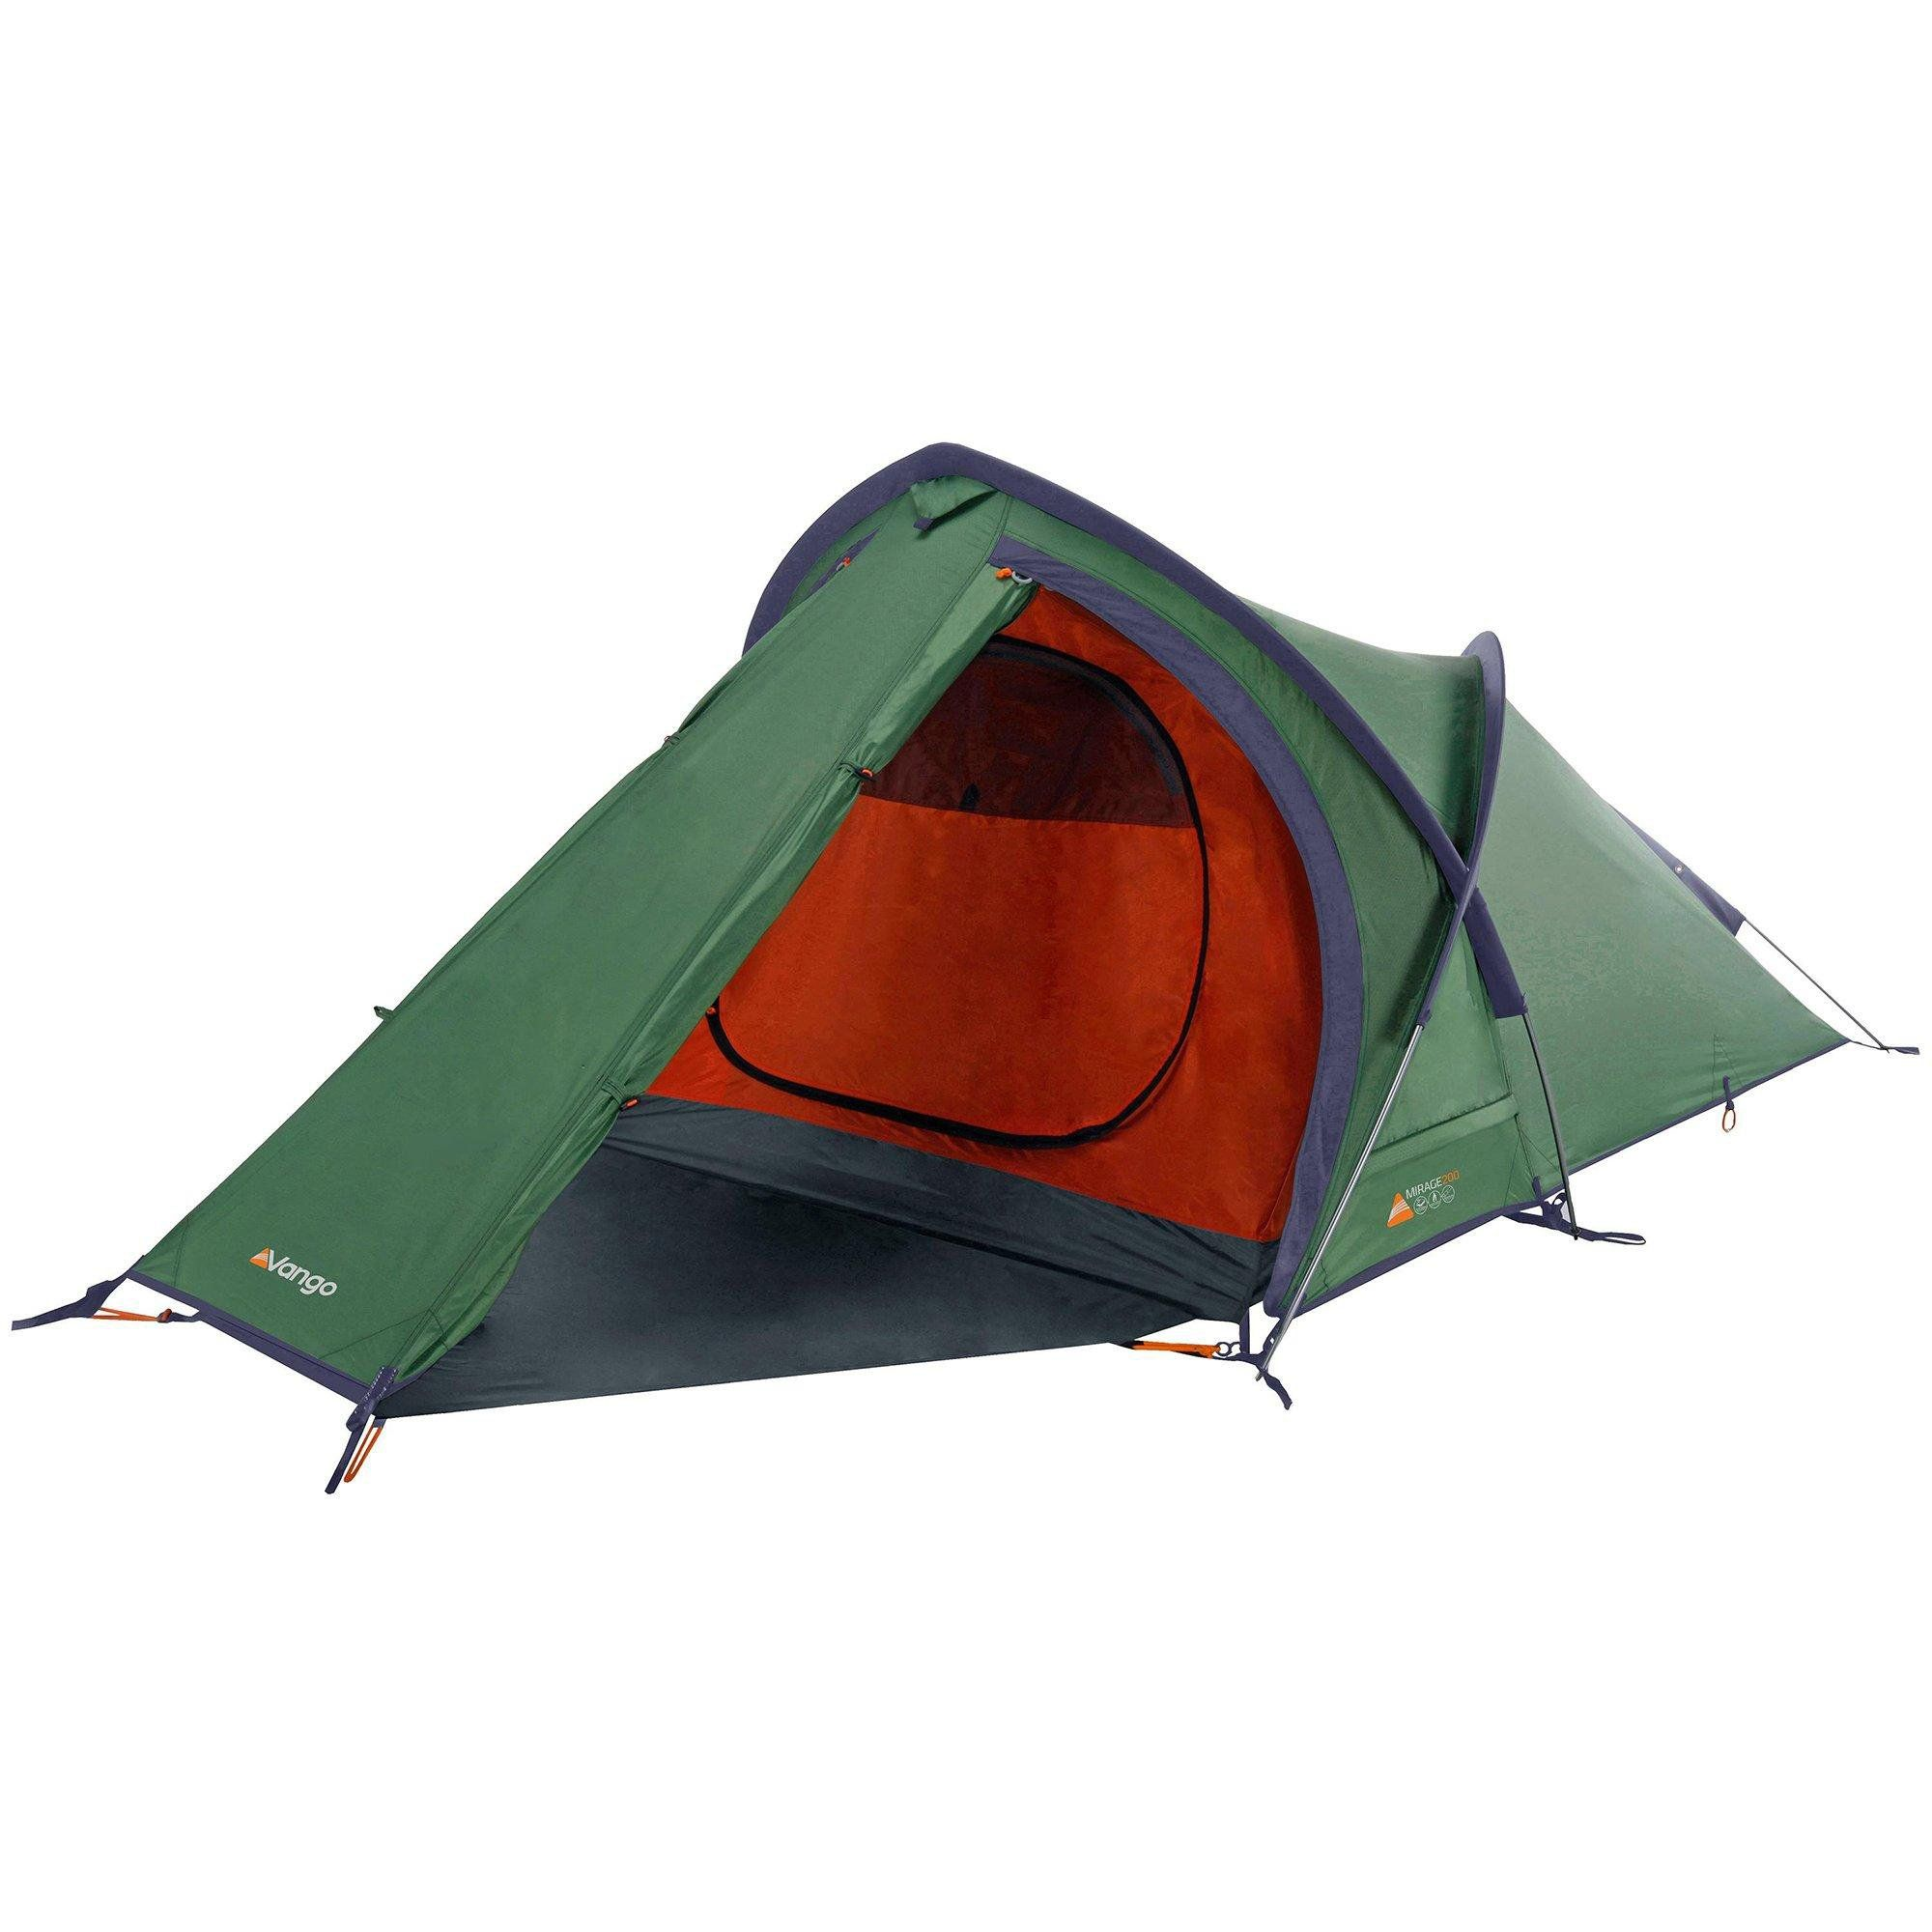 VANGO Mirage 200 2 Man Tent